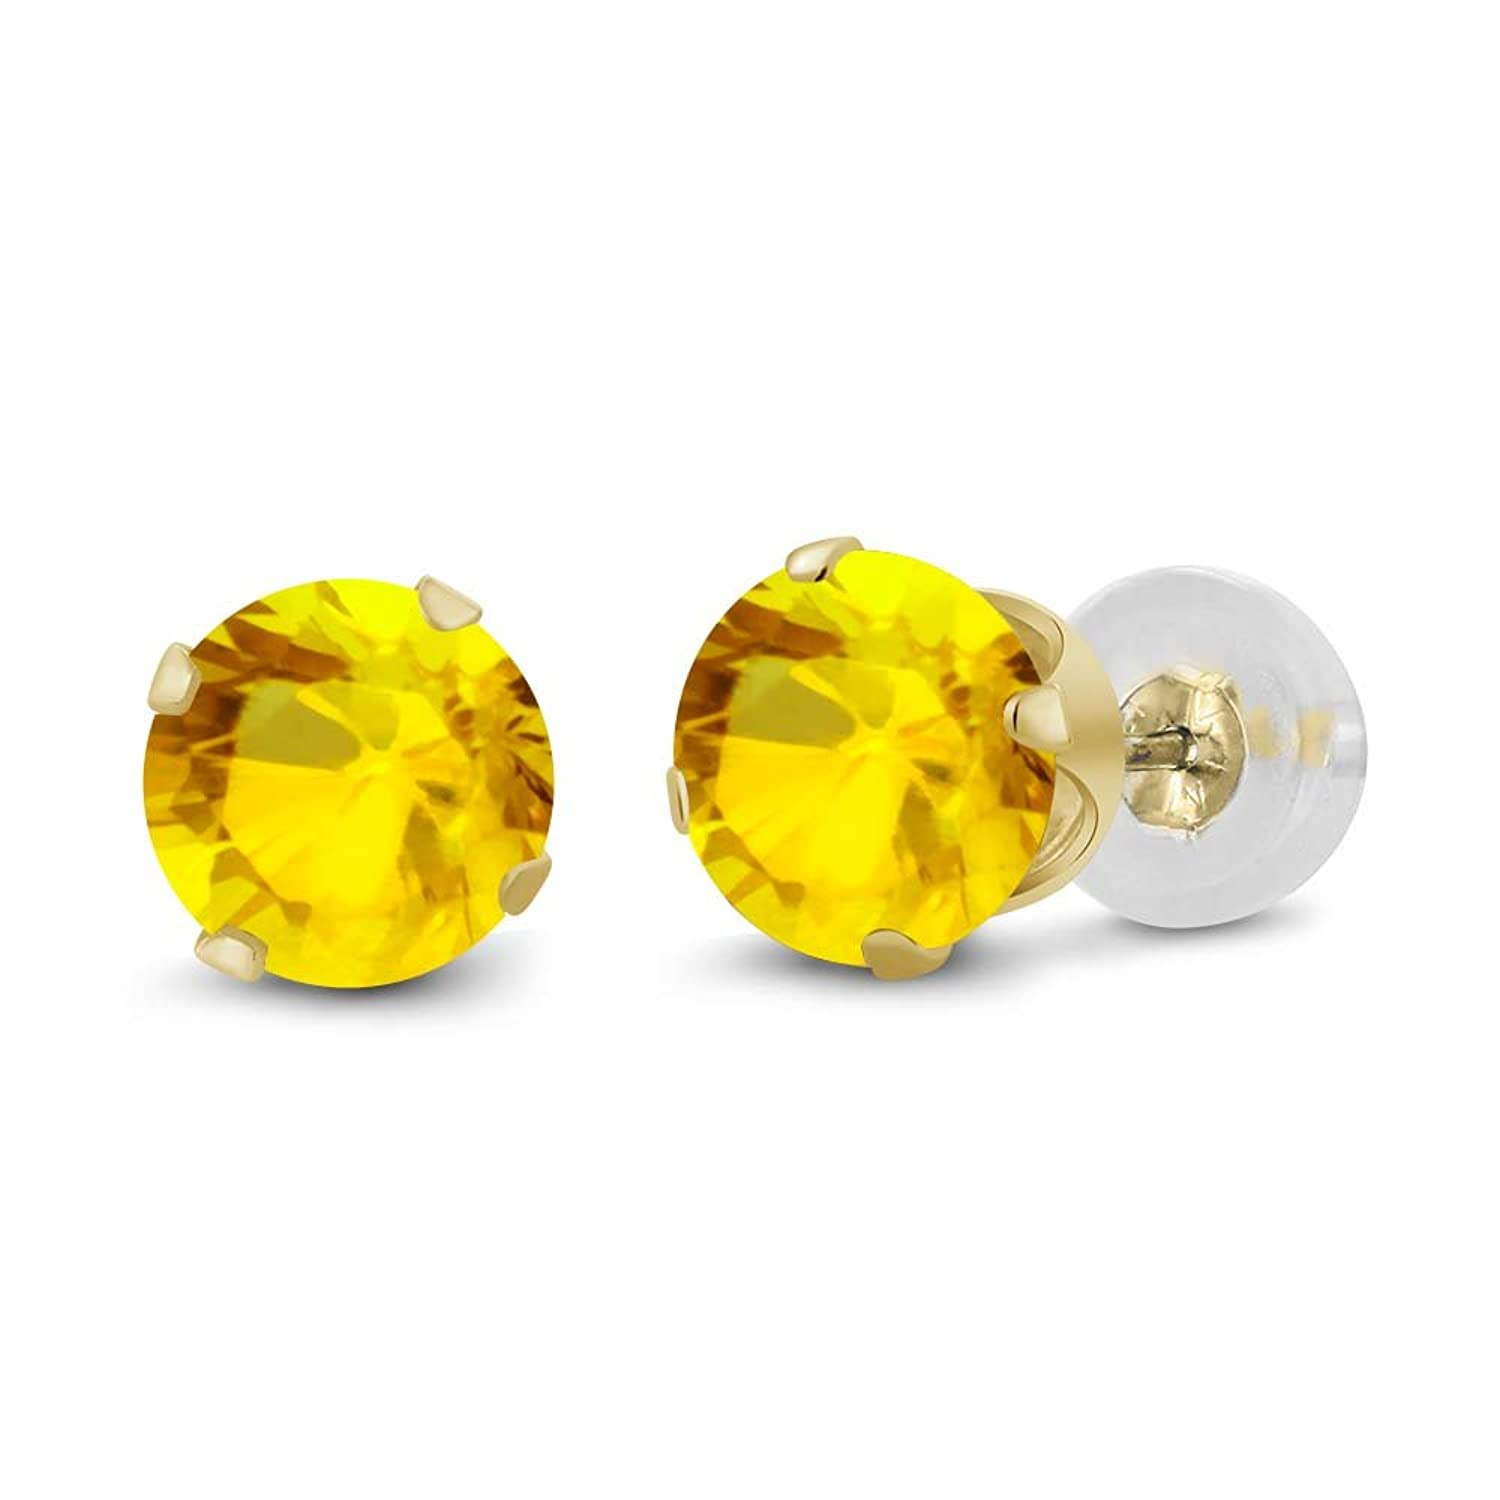 14K Yellow Gold Natural Yellow Sapphire Women's Stud Earrings (0.72 cttw, 4MM Round)